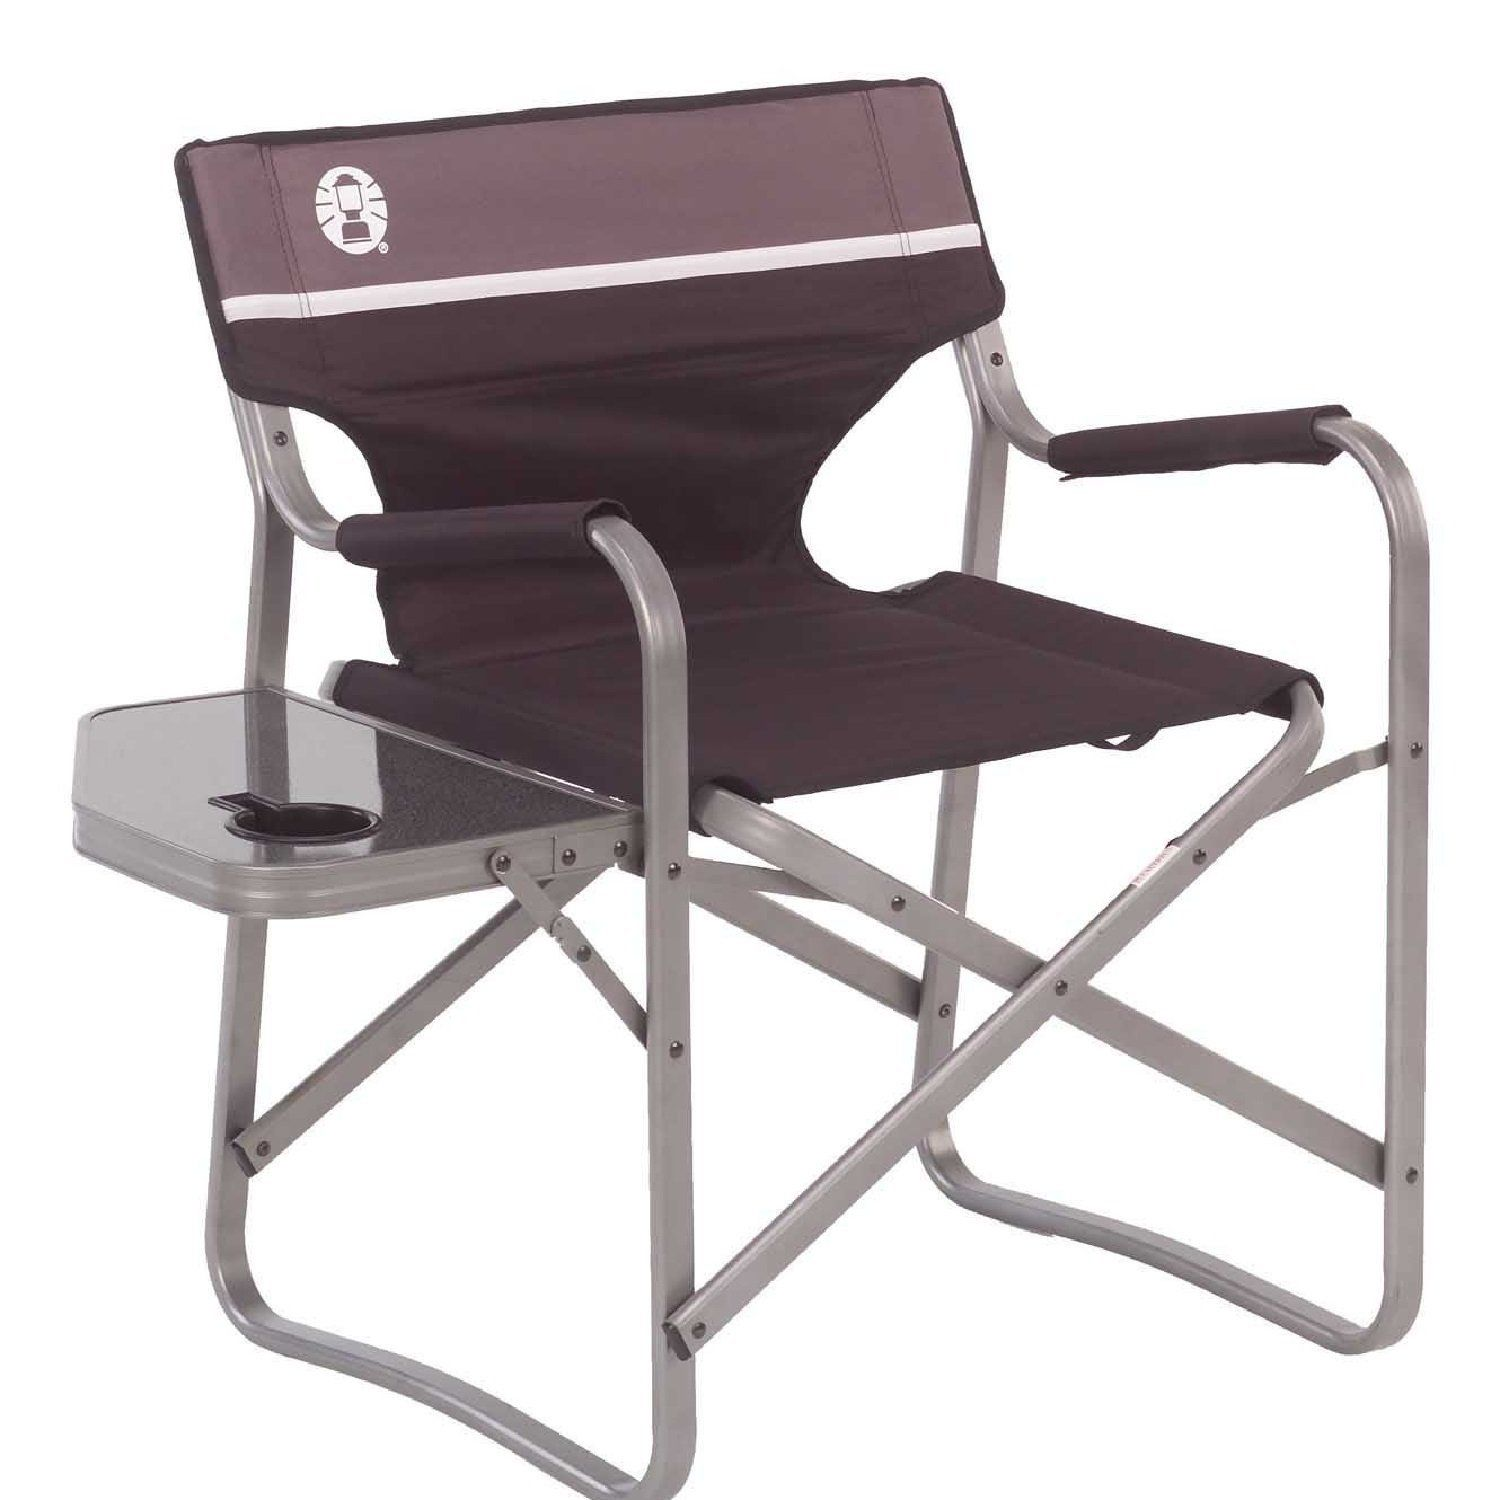 Coleman Portable Deck Chair with Side Table You can